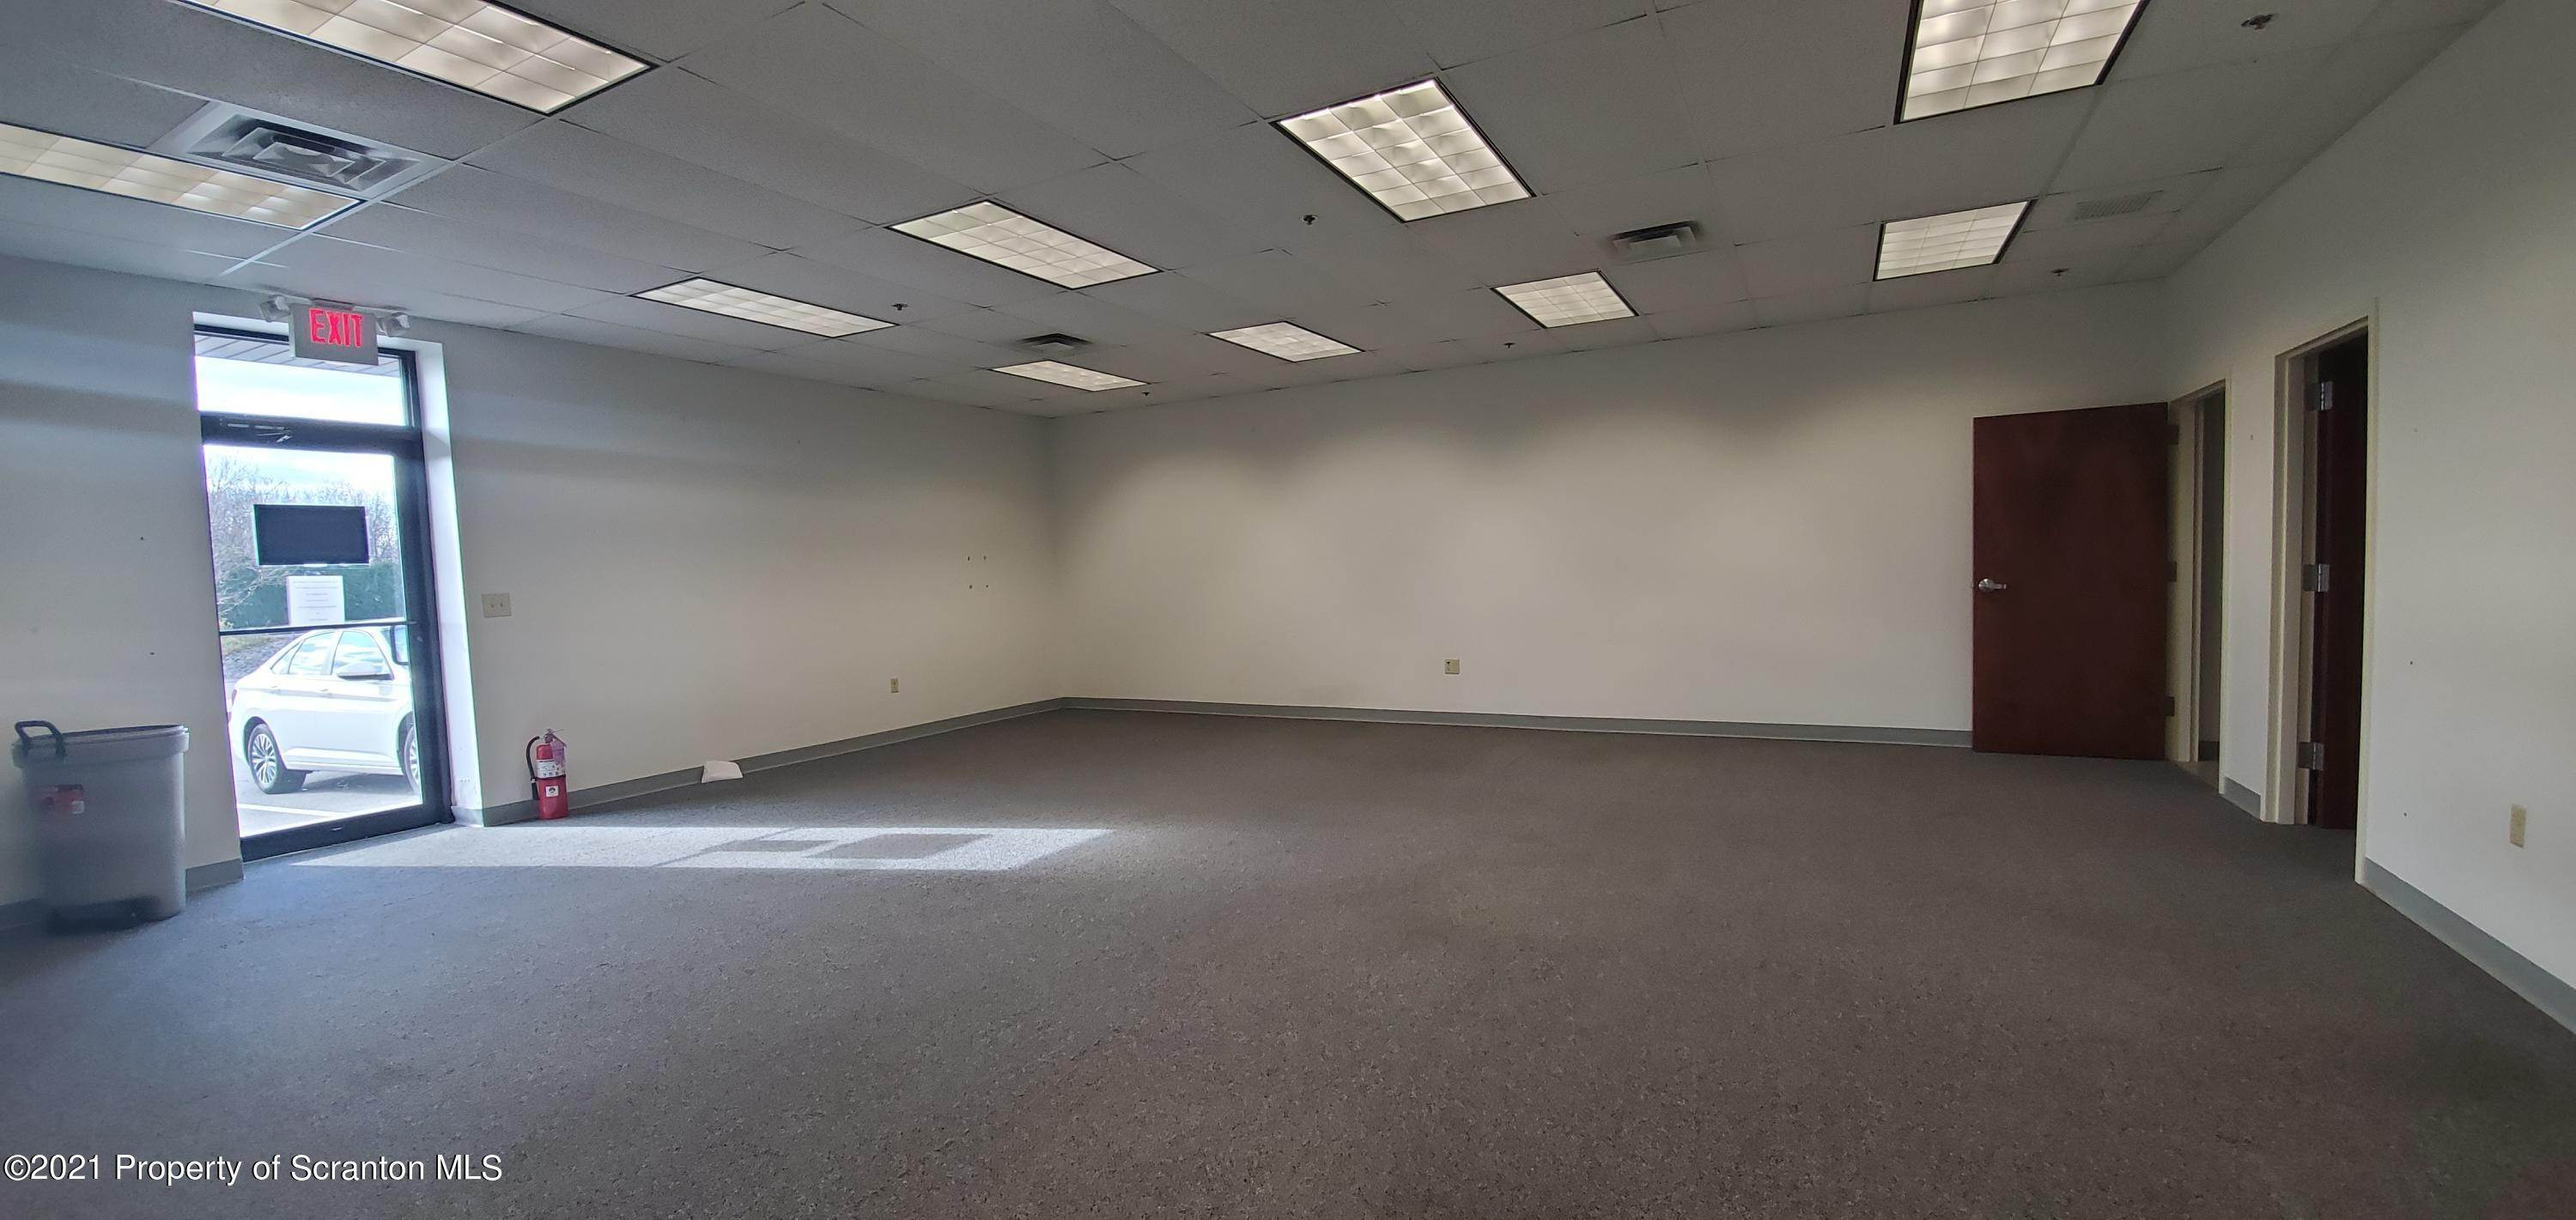 Commercial for Rent at 2200 Stafford Ave Scranton, Pennsylvania 18505 United States